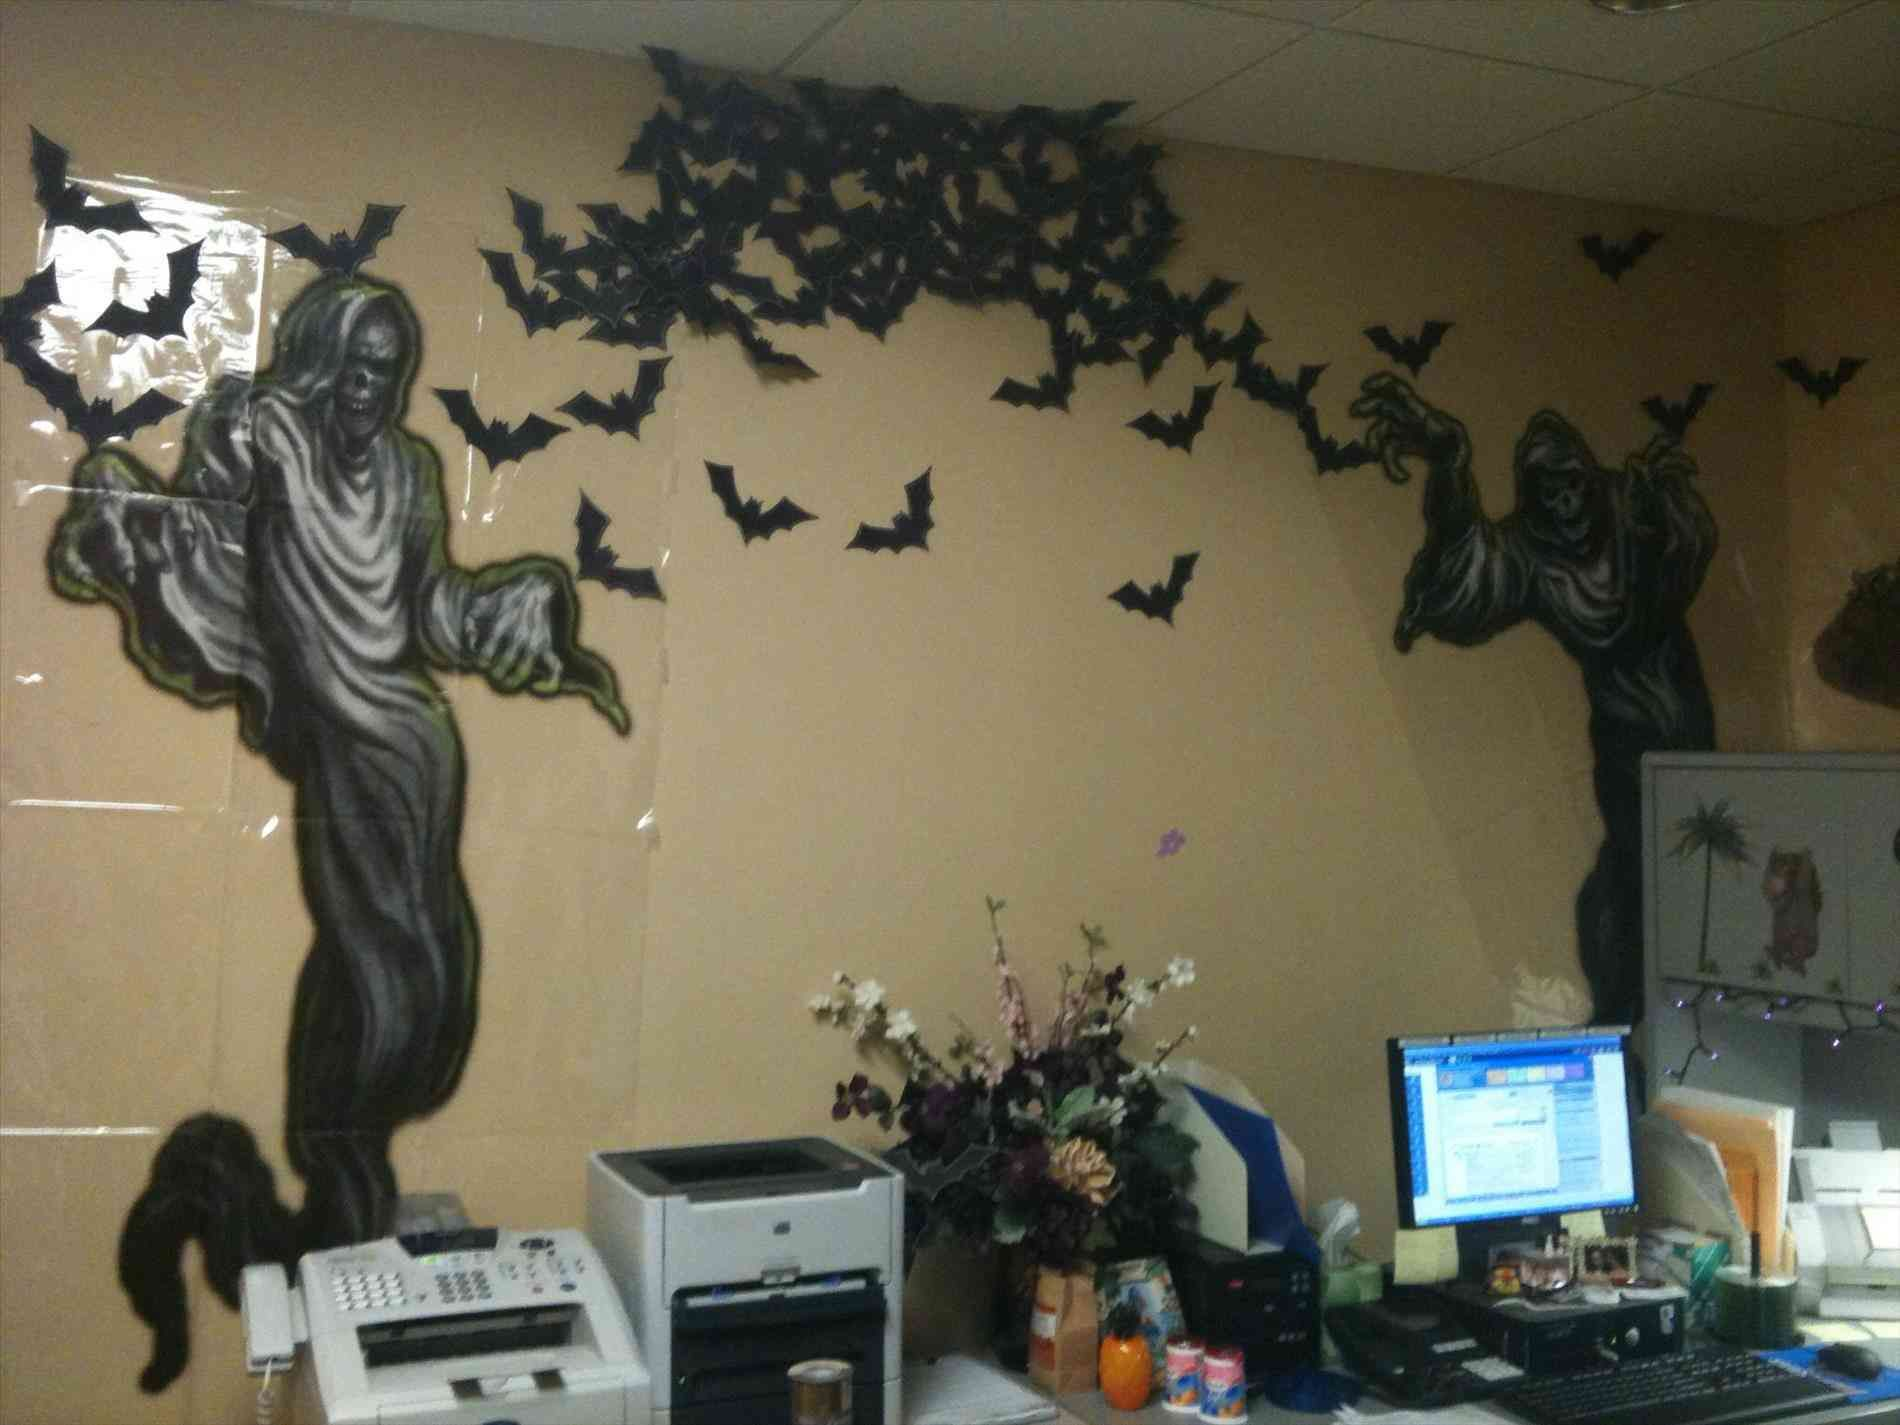 New Post halloween office decorations visit Bobayule Trending Decors - Halloween Office Decorations Ideas